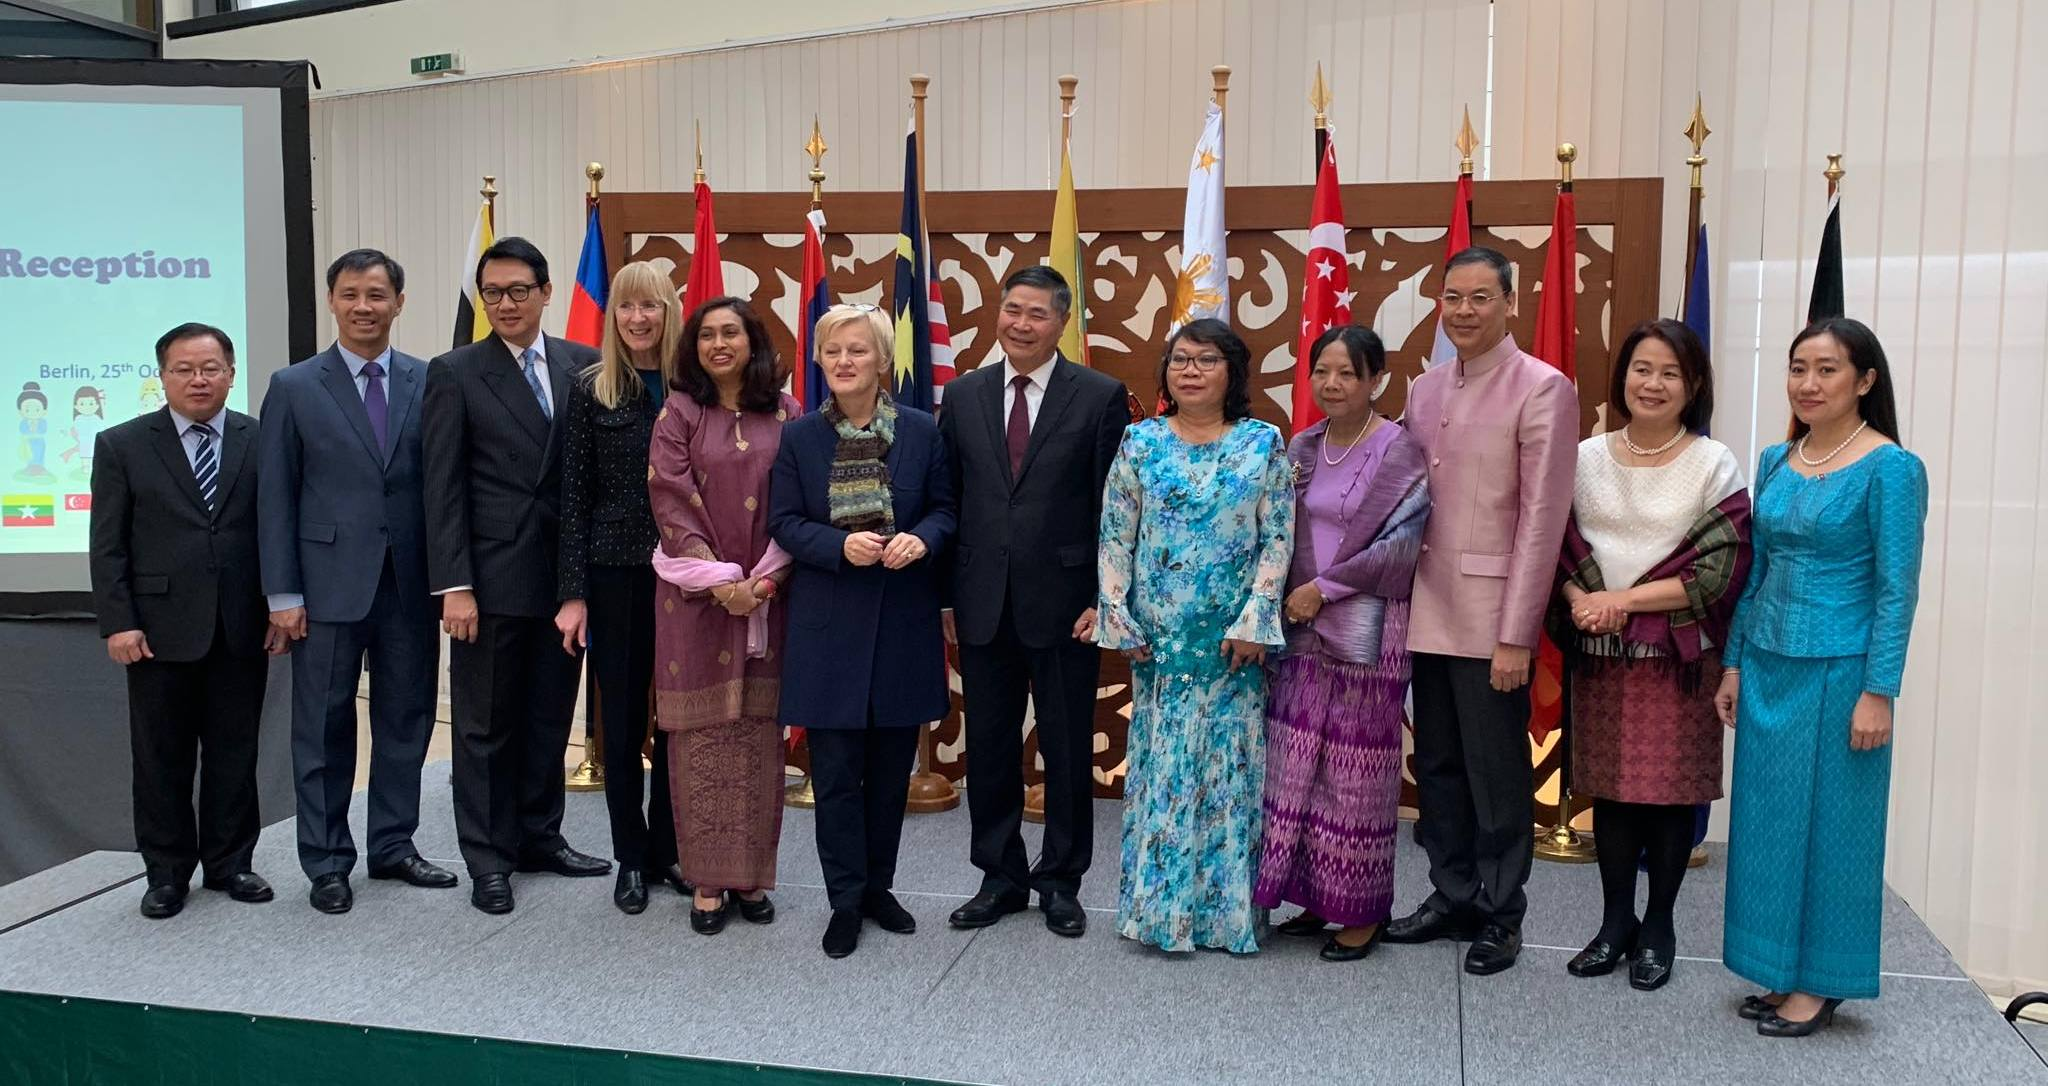 BERLIN ASEAN COMMITTEE HOSTS 2018 ASEAN DAY RECEPTION